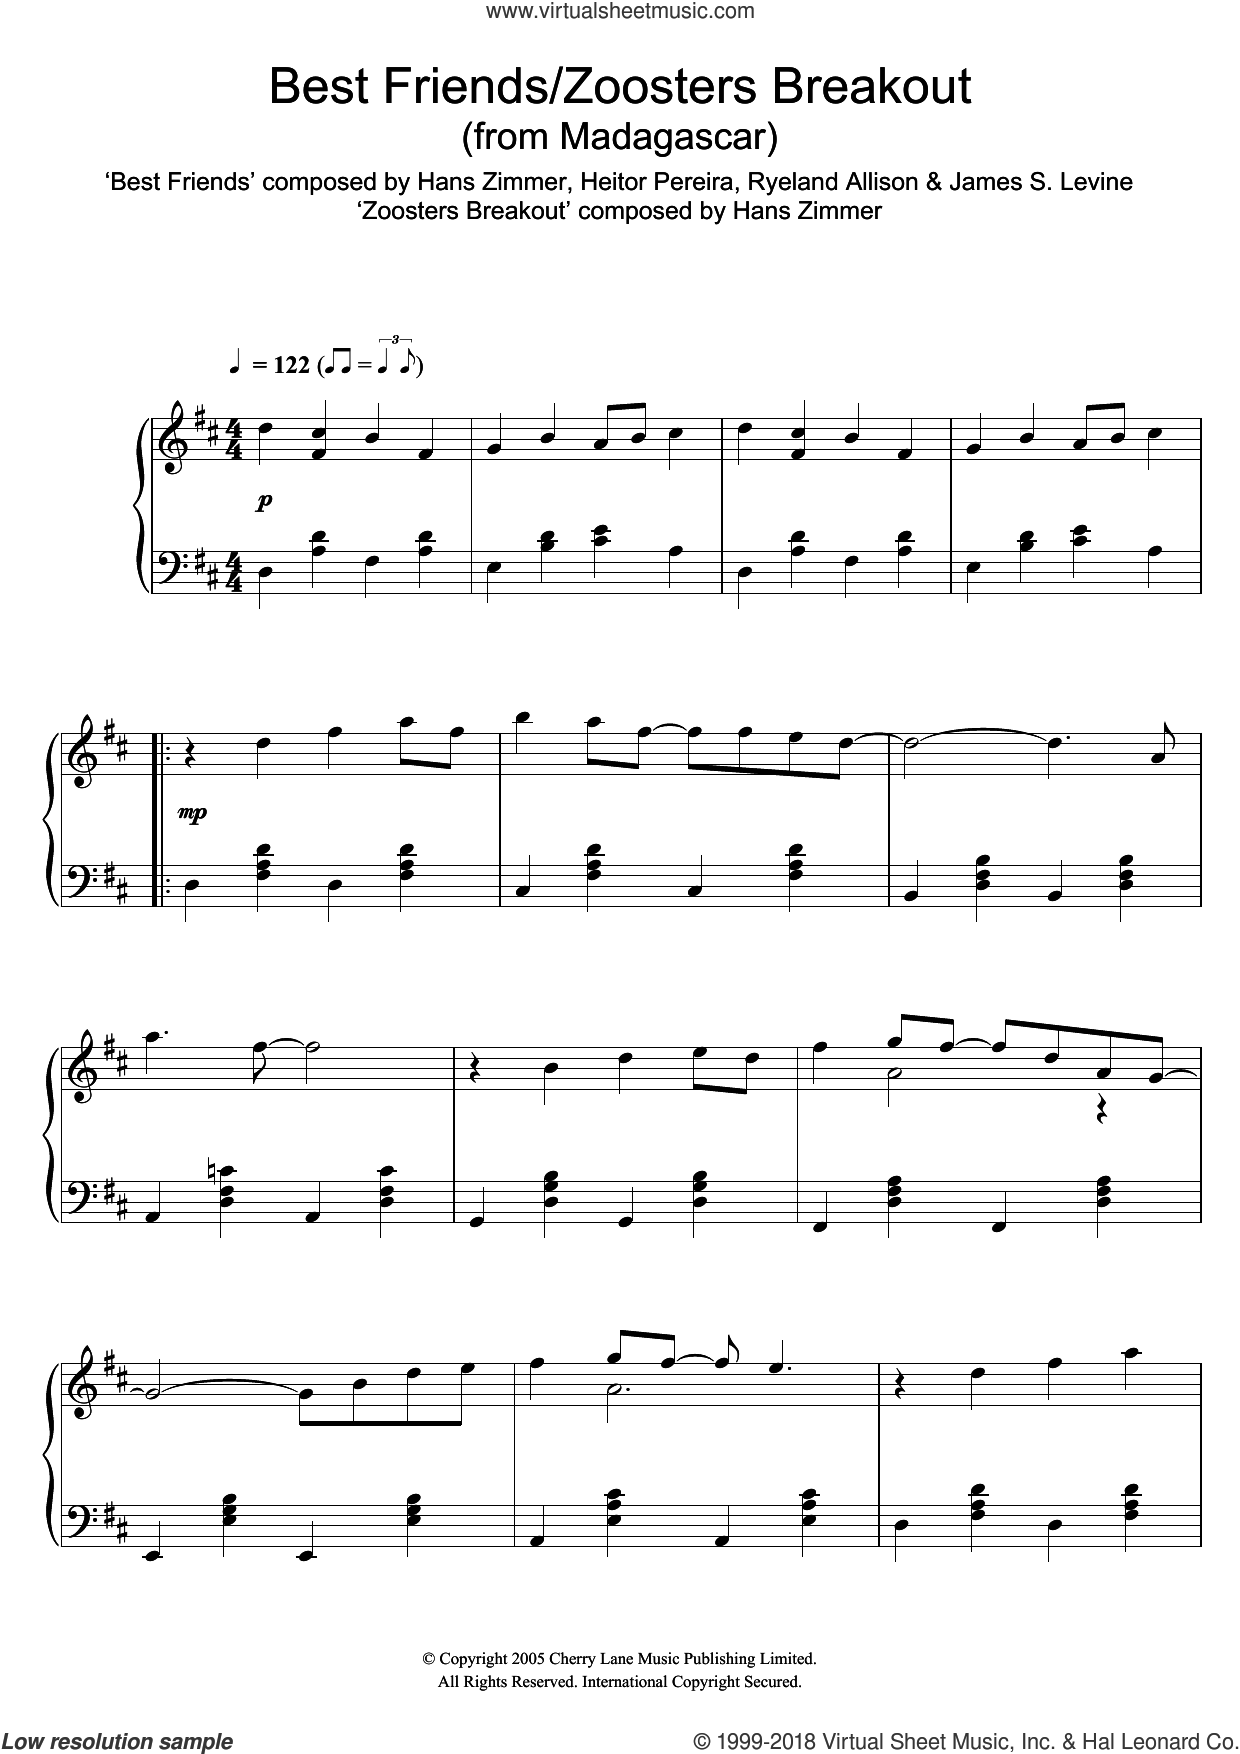 Madagascar (Best Friends/Zoosters Breakout) sheet music for piano solo by Hans Zimmer, intermediate skill level